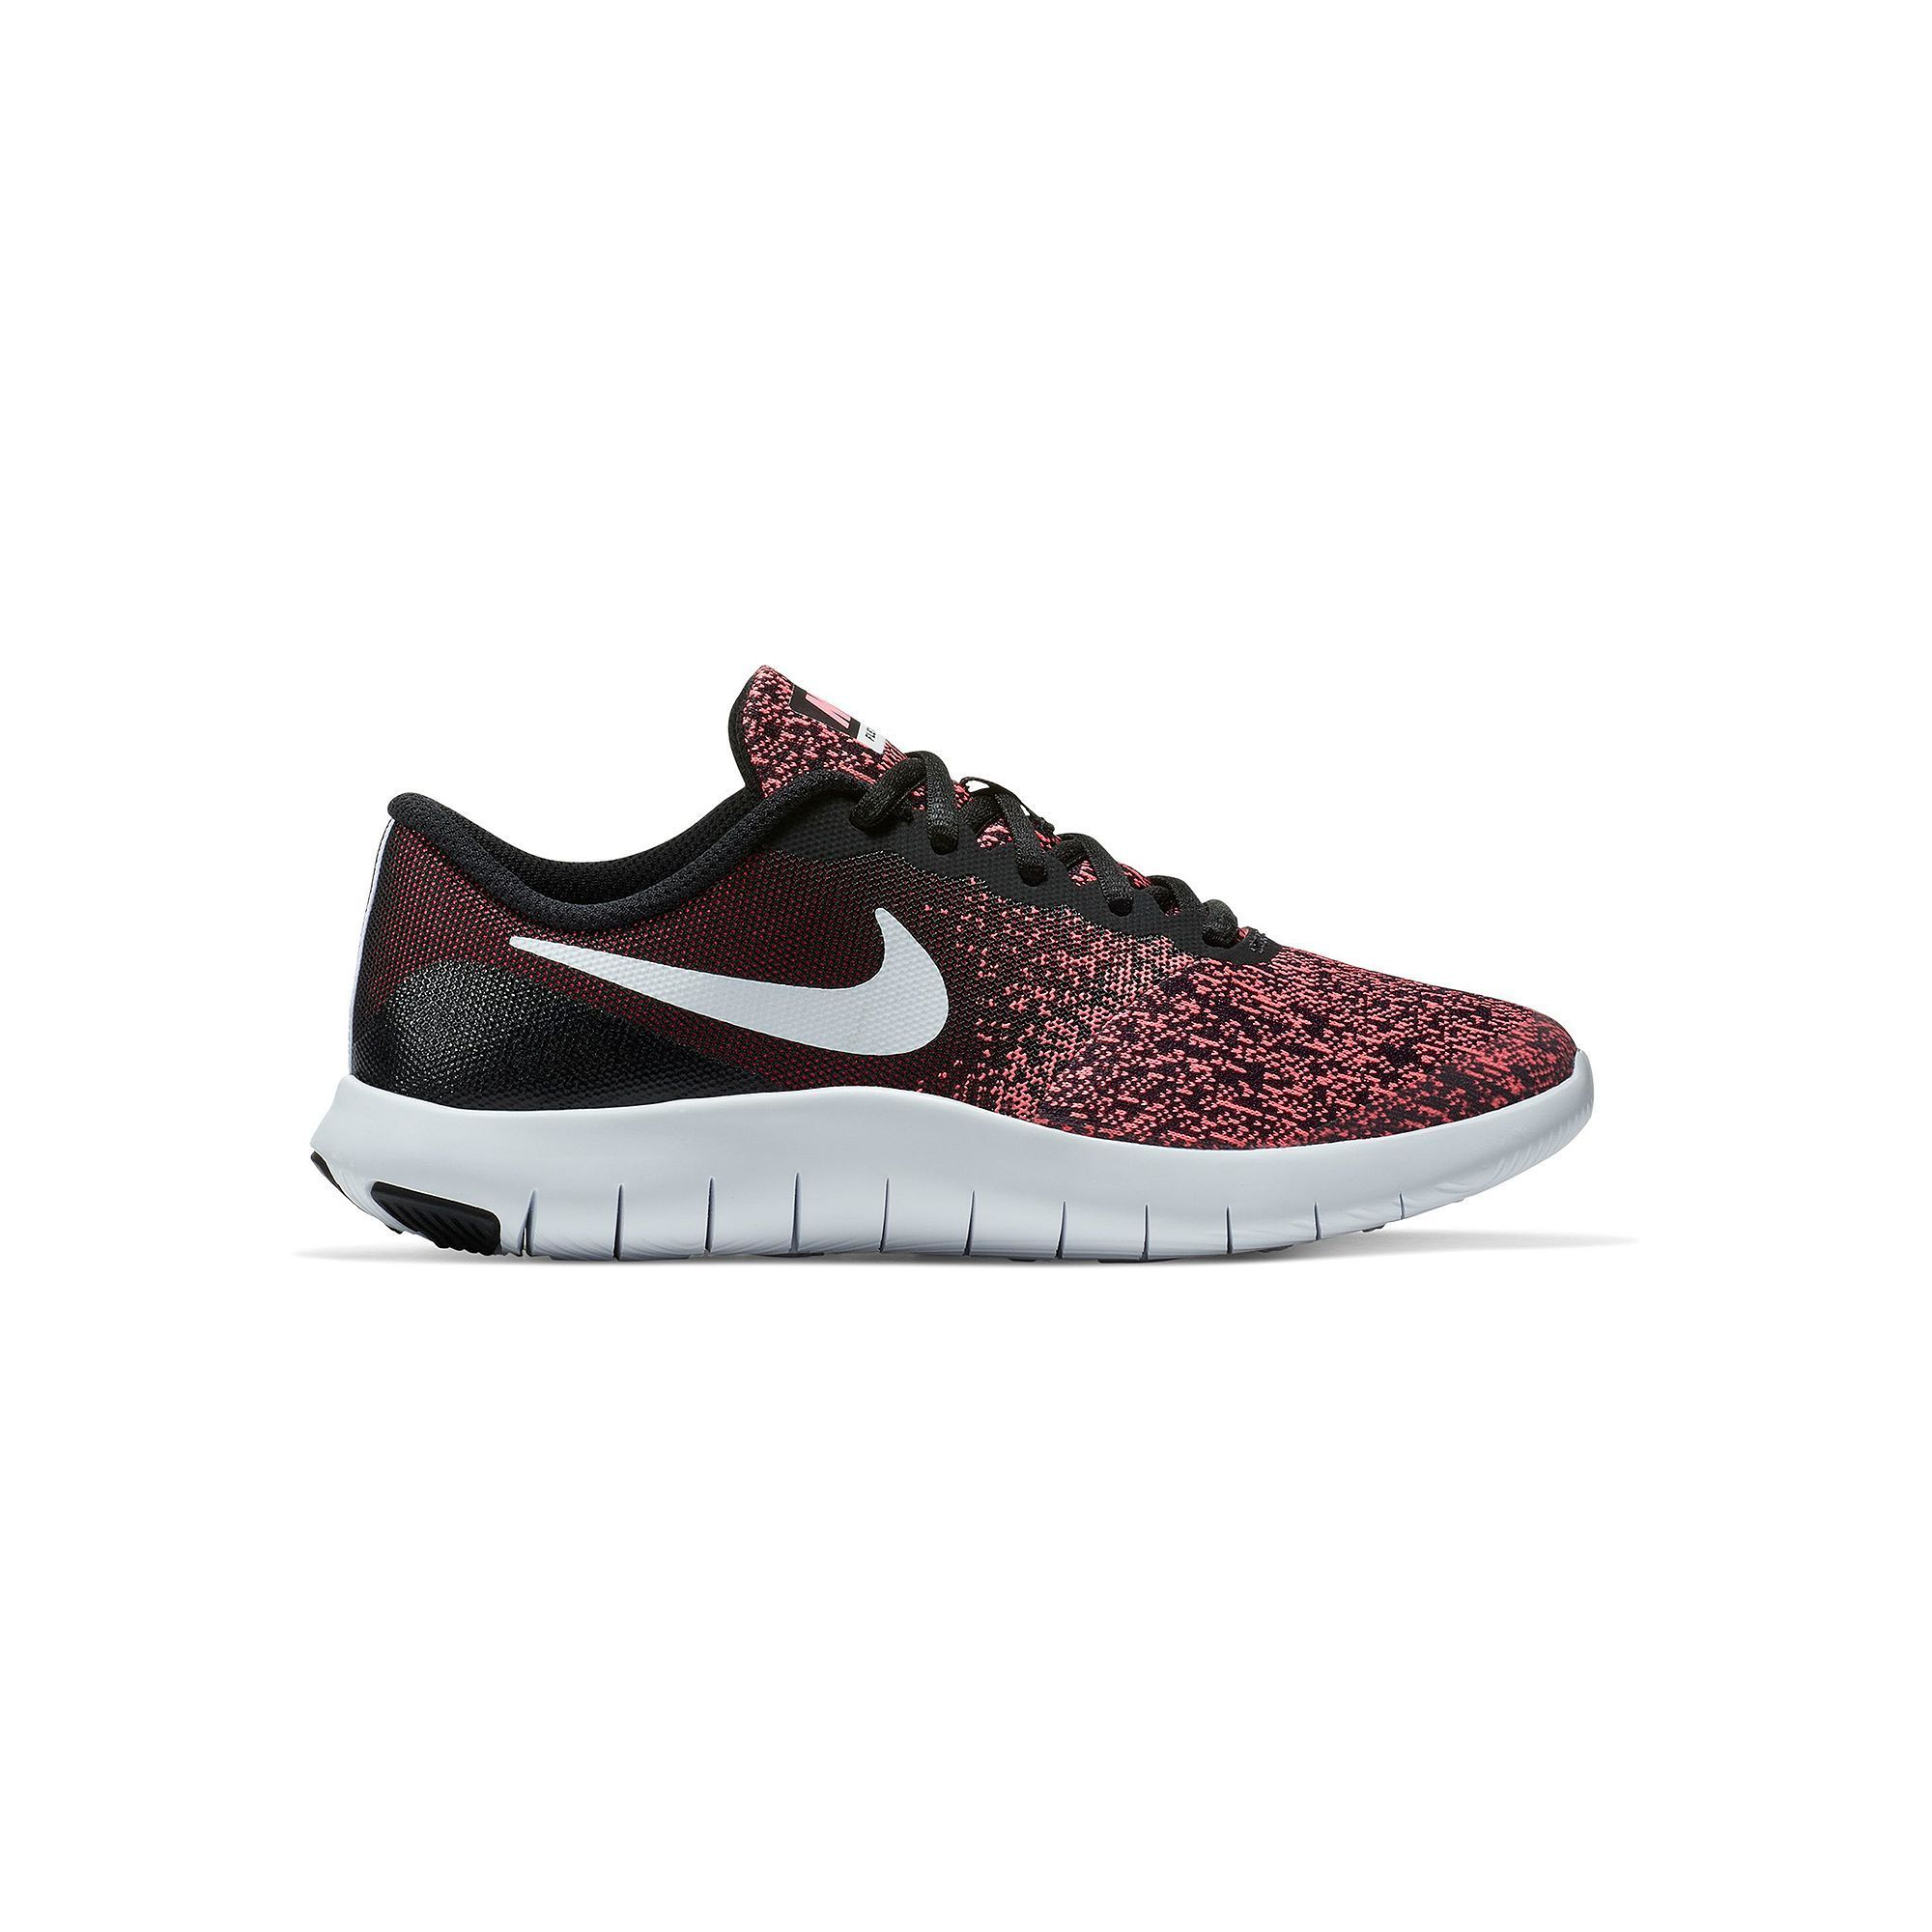 new product d0522 5d109 Nike Flex Contact Grade School Girls  Sneakers